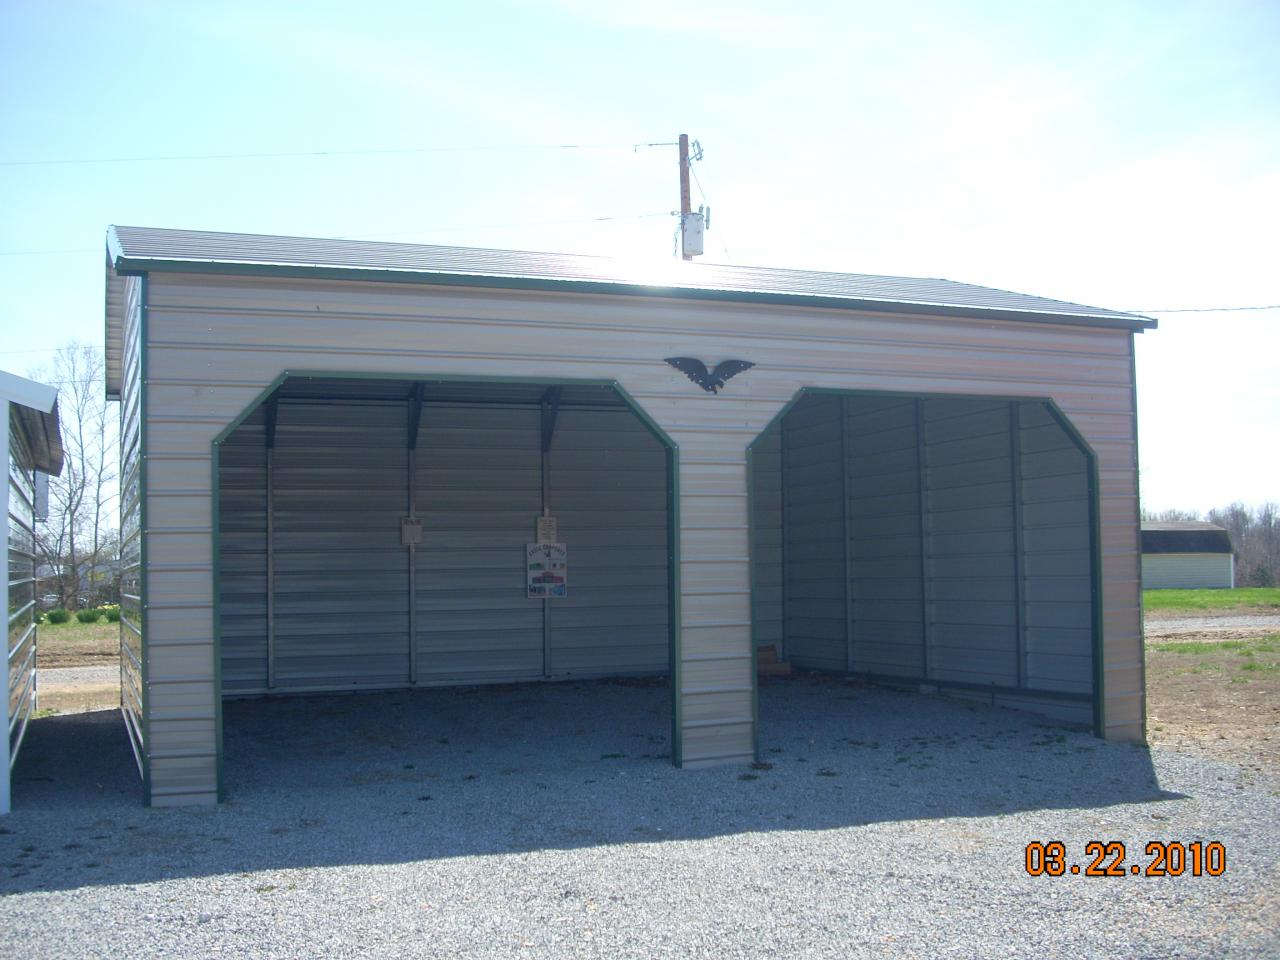 enclosed amazing garages frame a com garage creek style single carports asyfreedomwalk carport pine and image structures